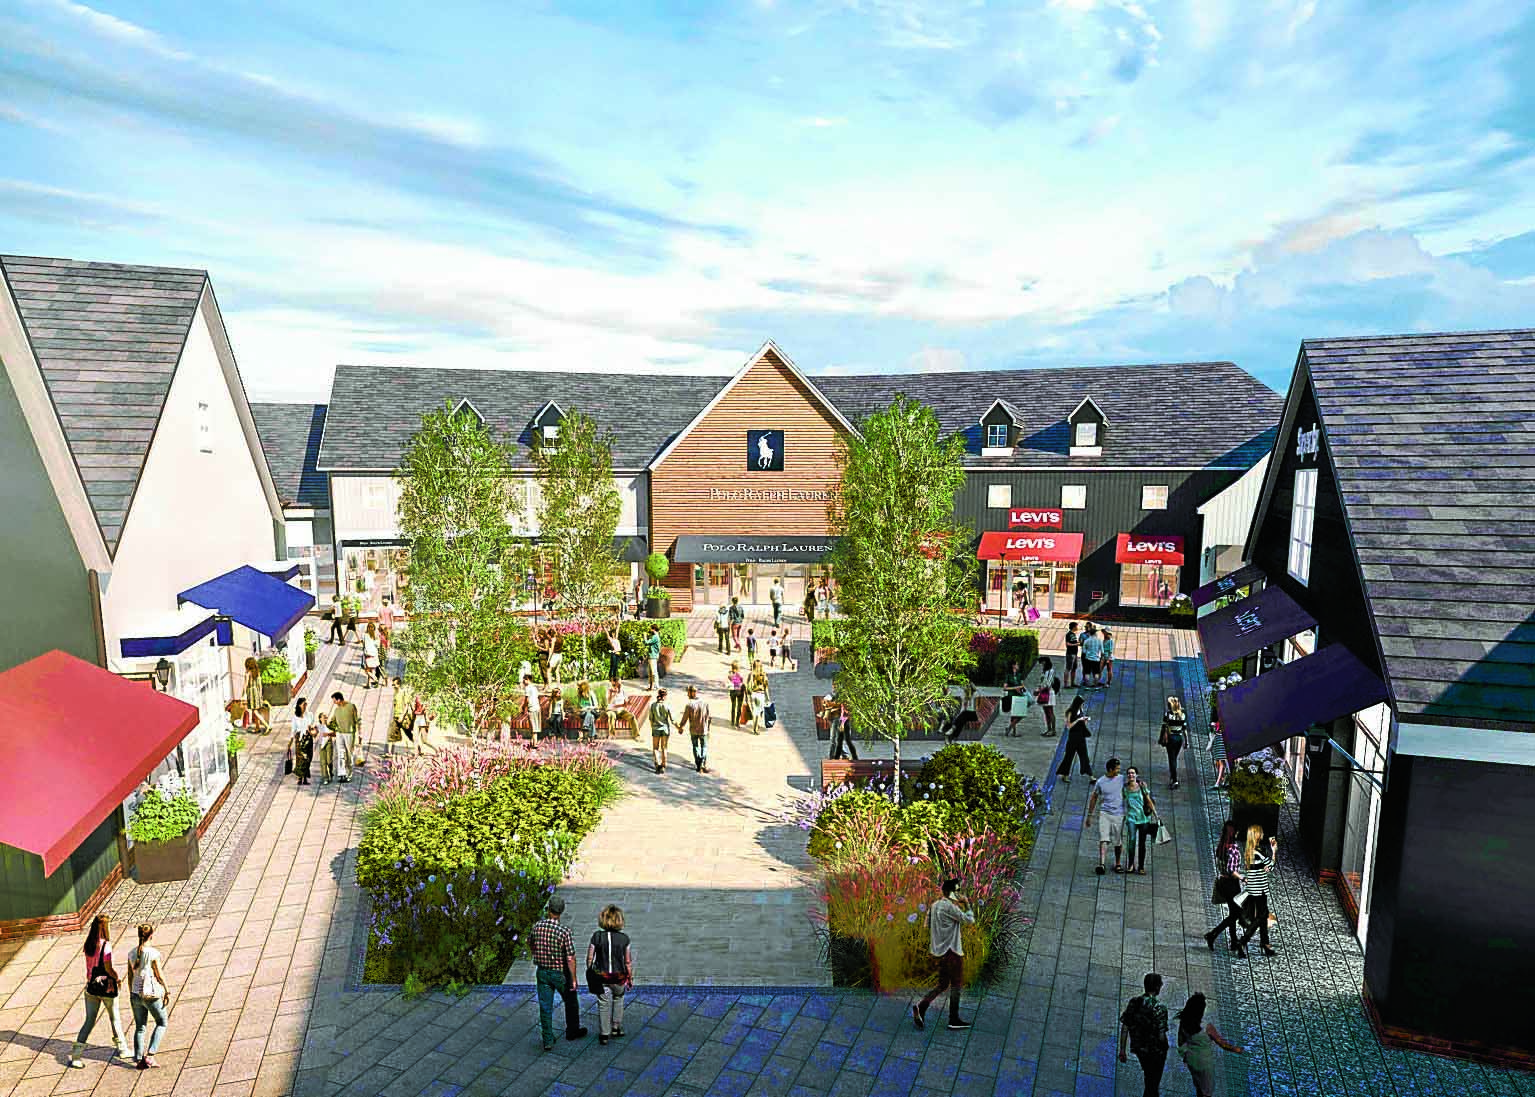 New name for outlet village